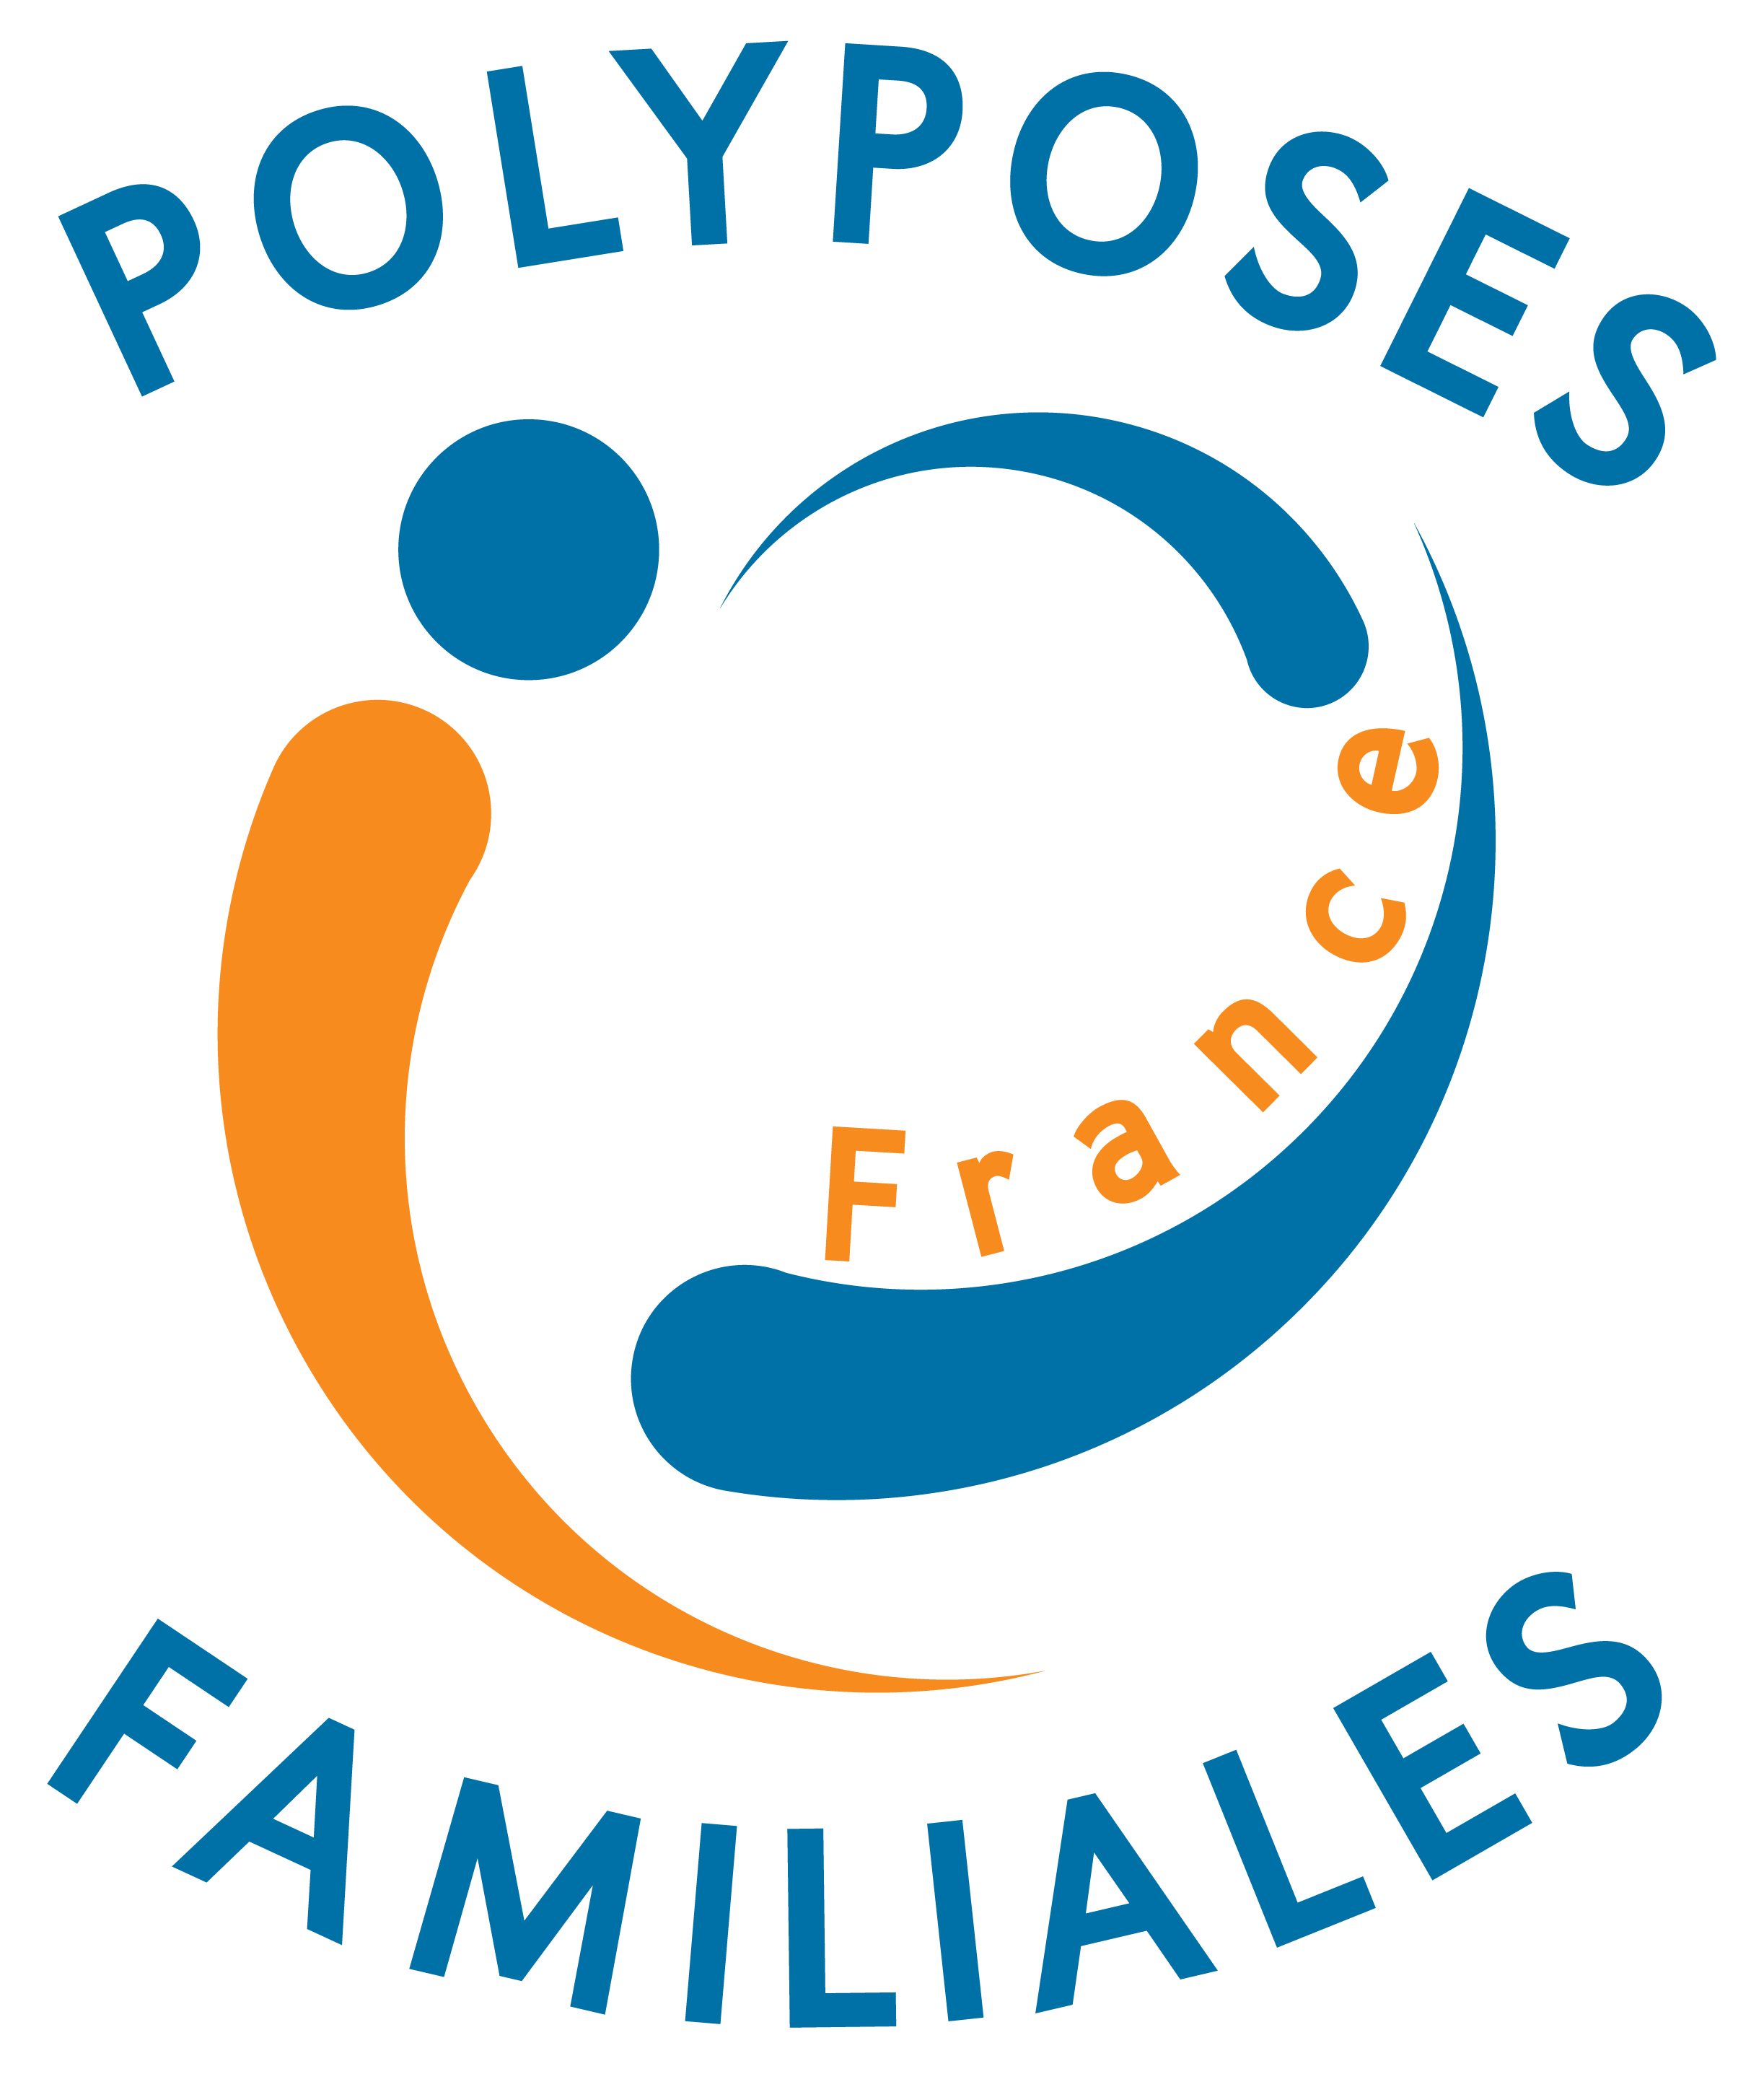 Association POLYPOSES FAMILIALES France